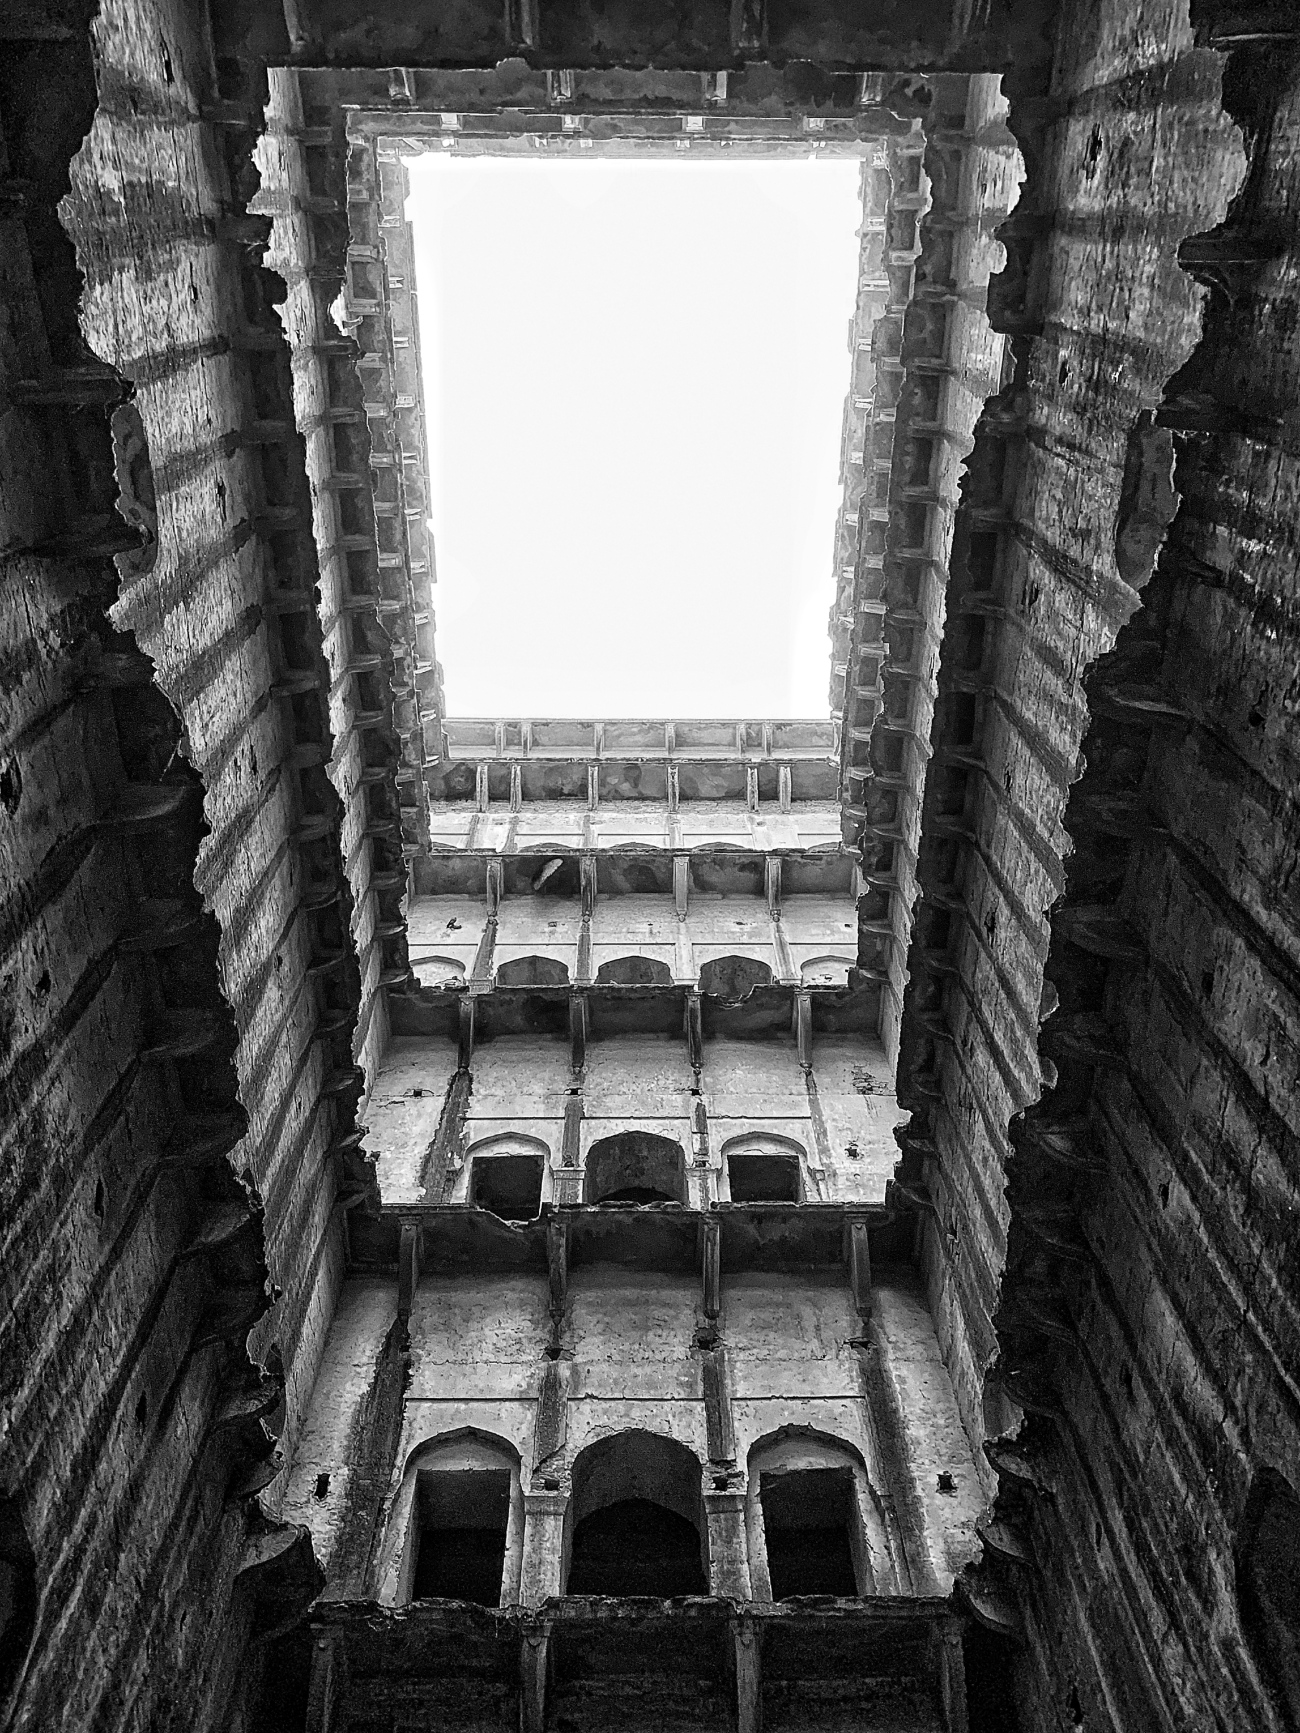 looking up 9 floors - neemrana baori